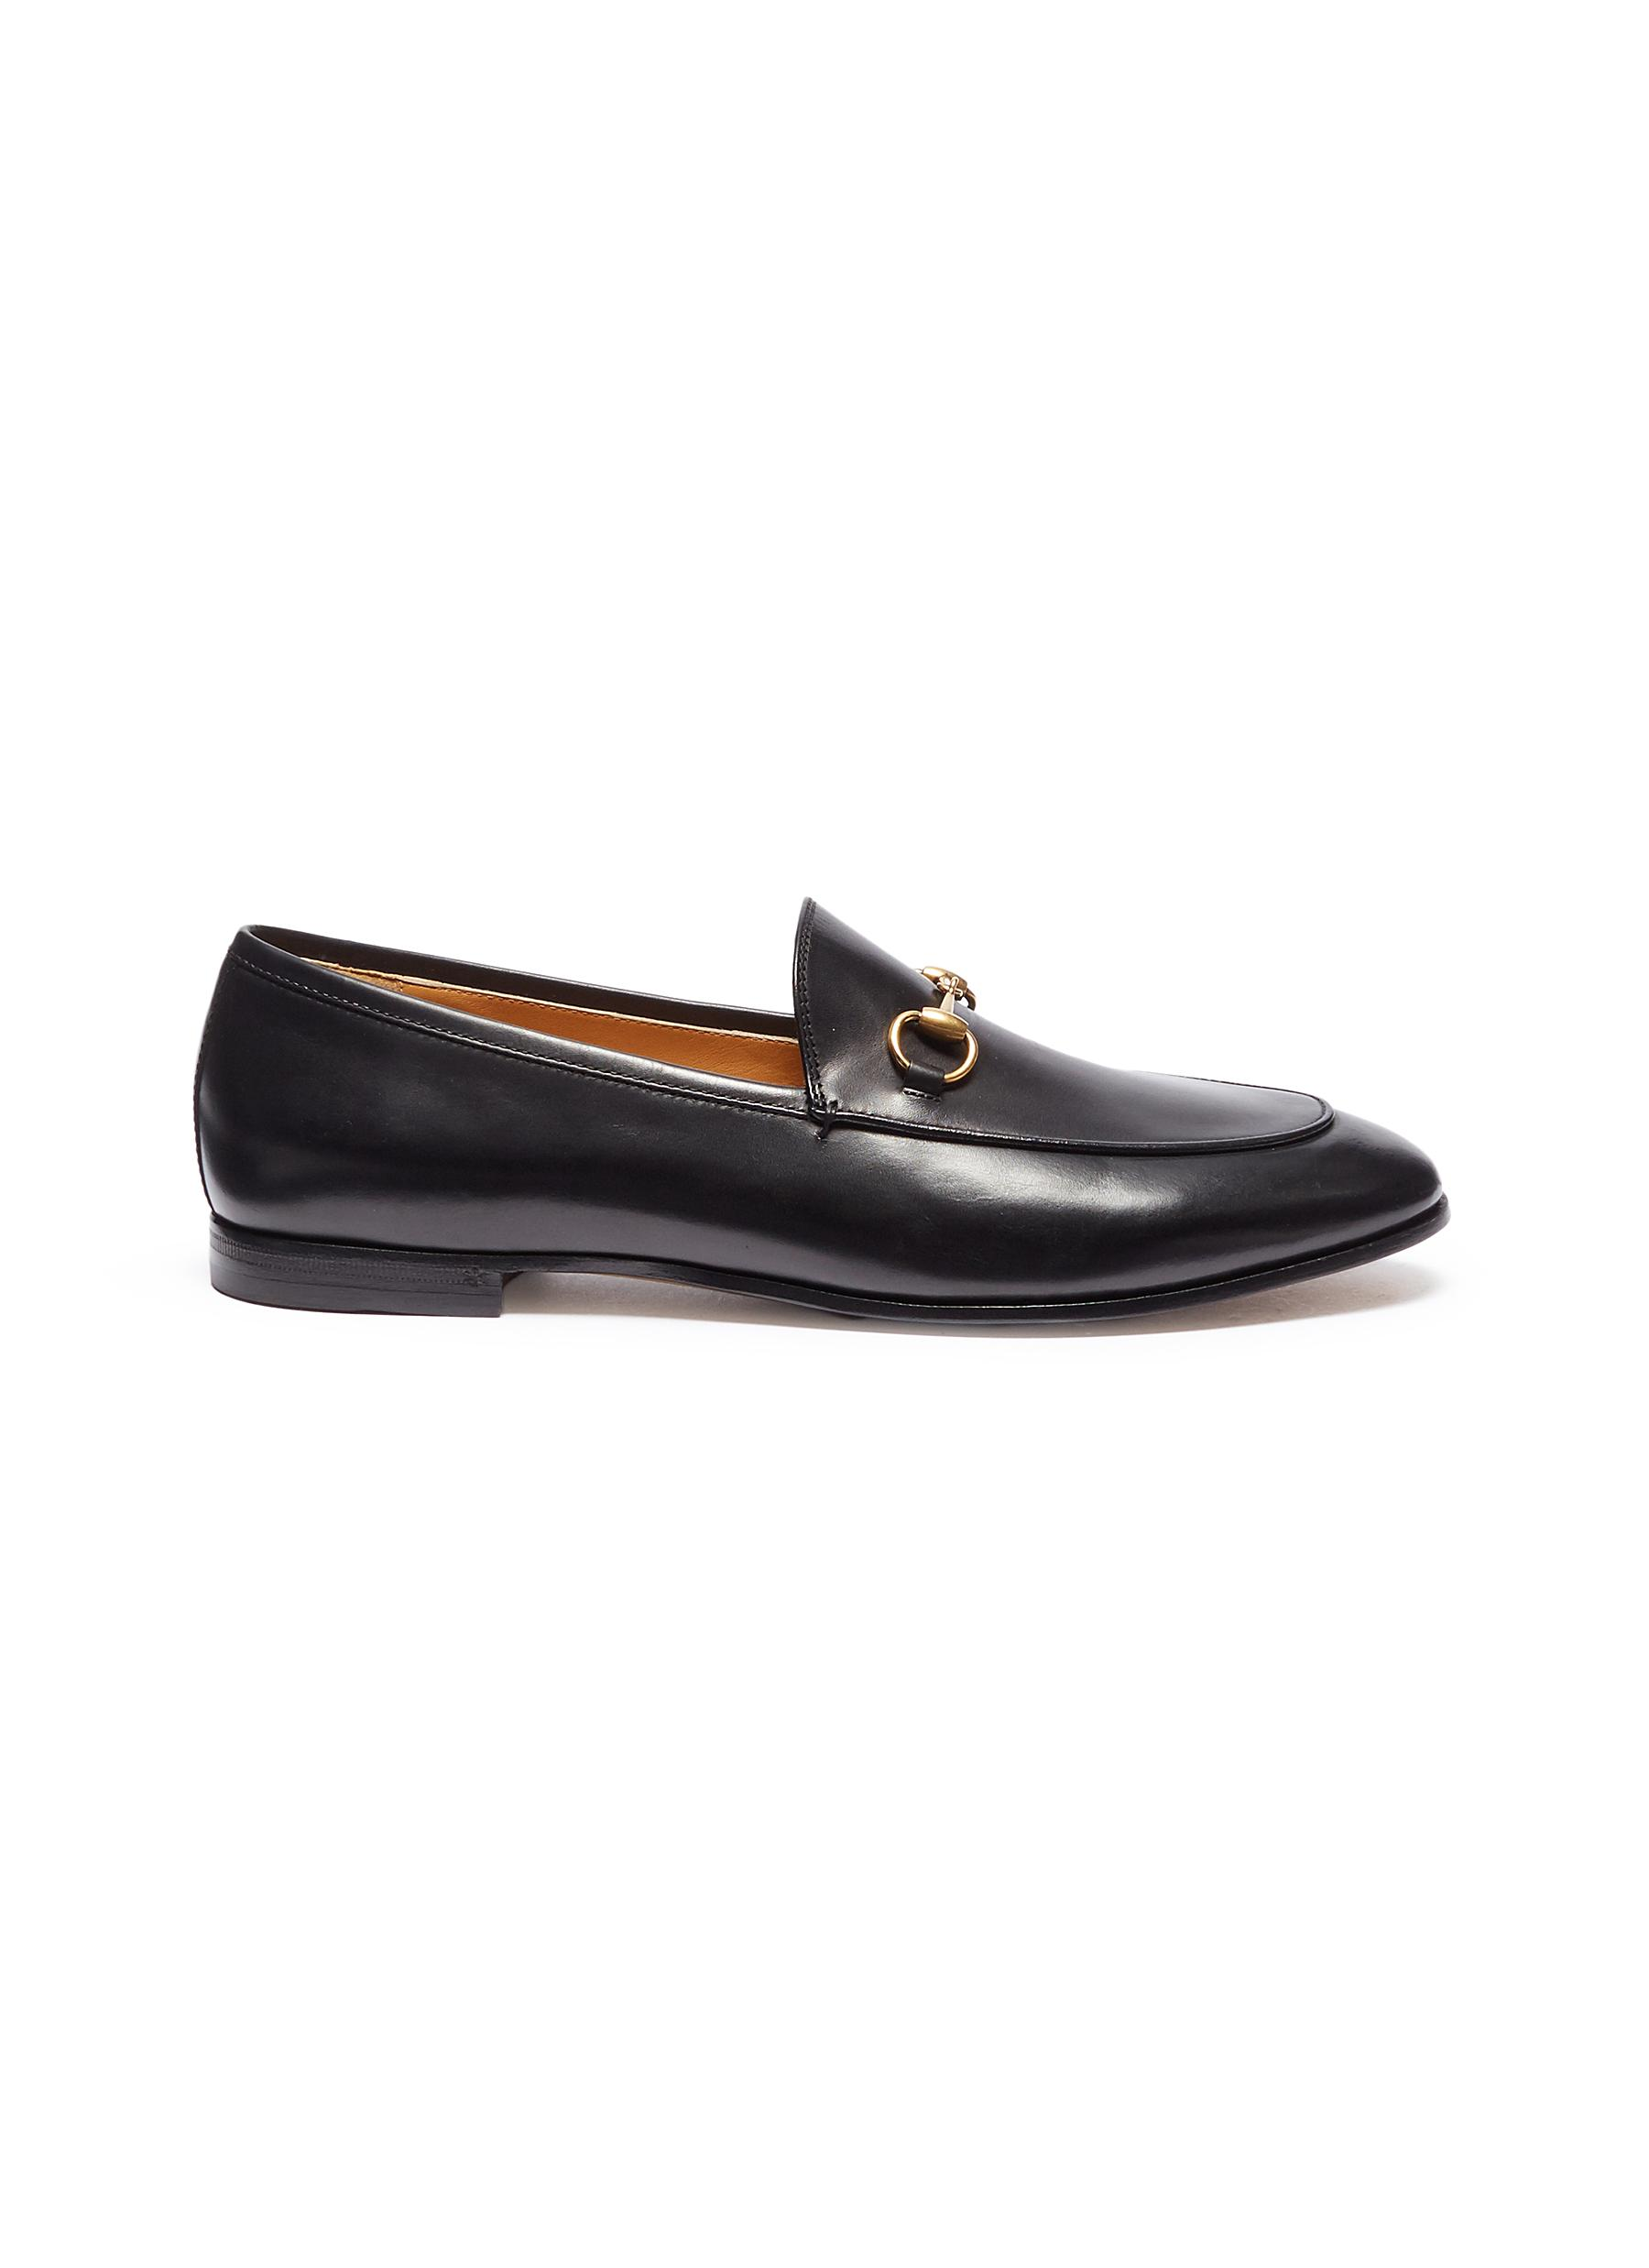 47899a053845 Gucci.  Jordaan  horsebit leather loafers